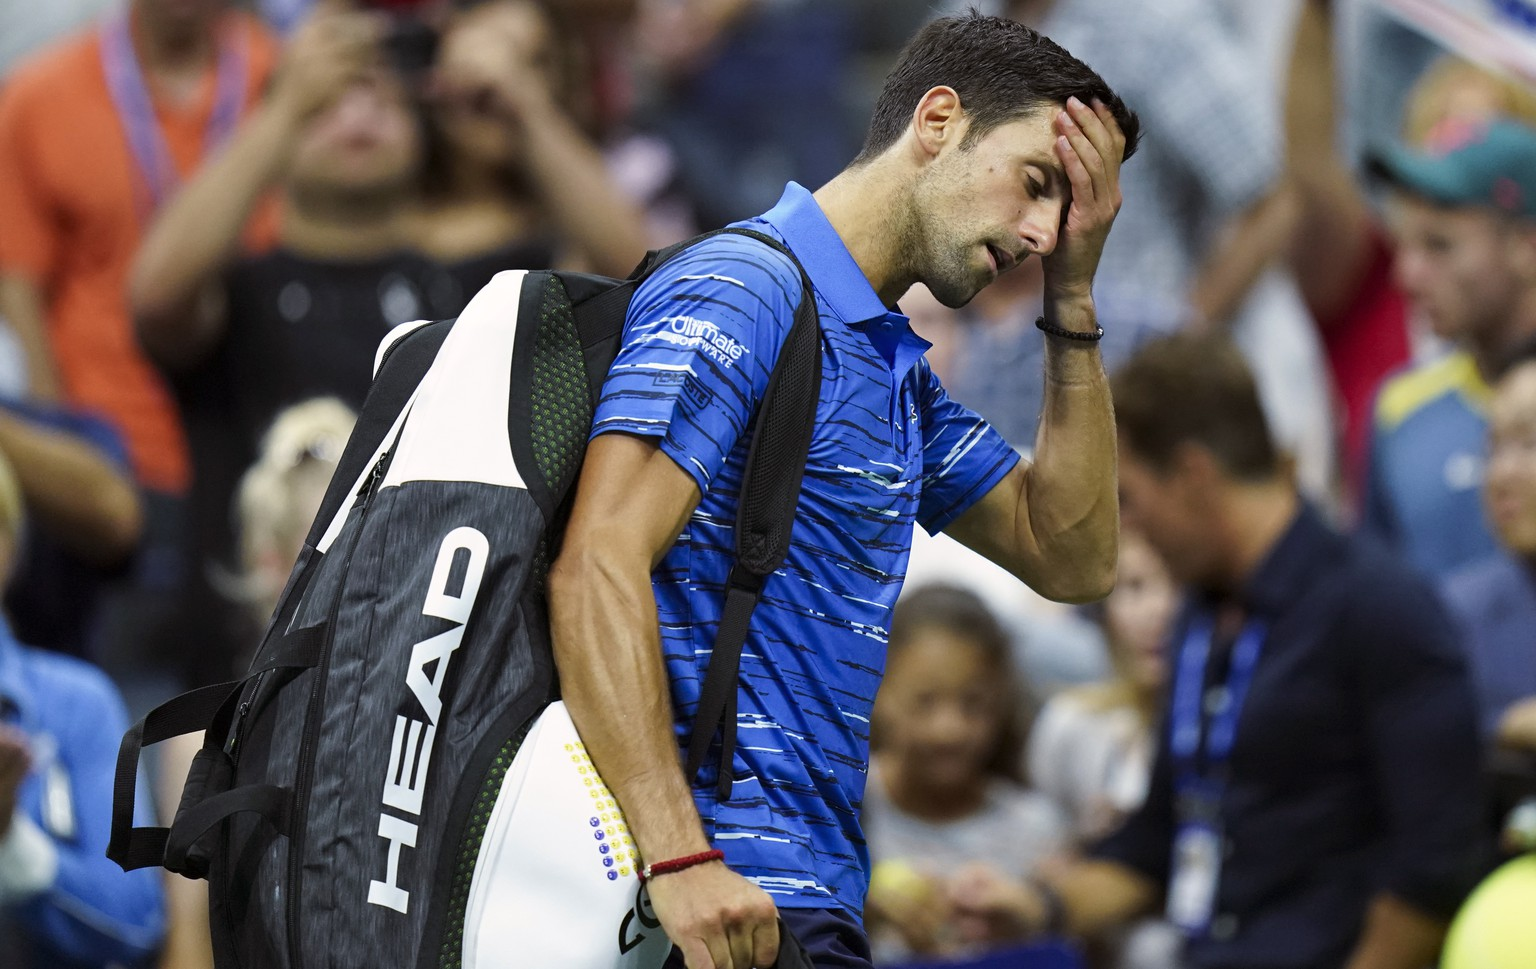 Novak Djokovic, of Serbia, walks off the court as he retires during his match against Stan Wawrinka, of Switzerland, during the fourth round of the U.S. Open tennis championships, Sunday, Sept. 1, 2019, in New York. (AP Photo/Eduardo Munoz Alvarez)